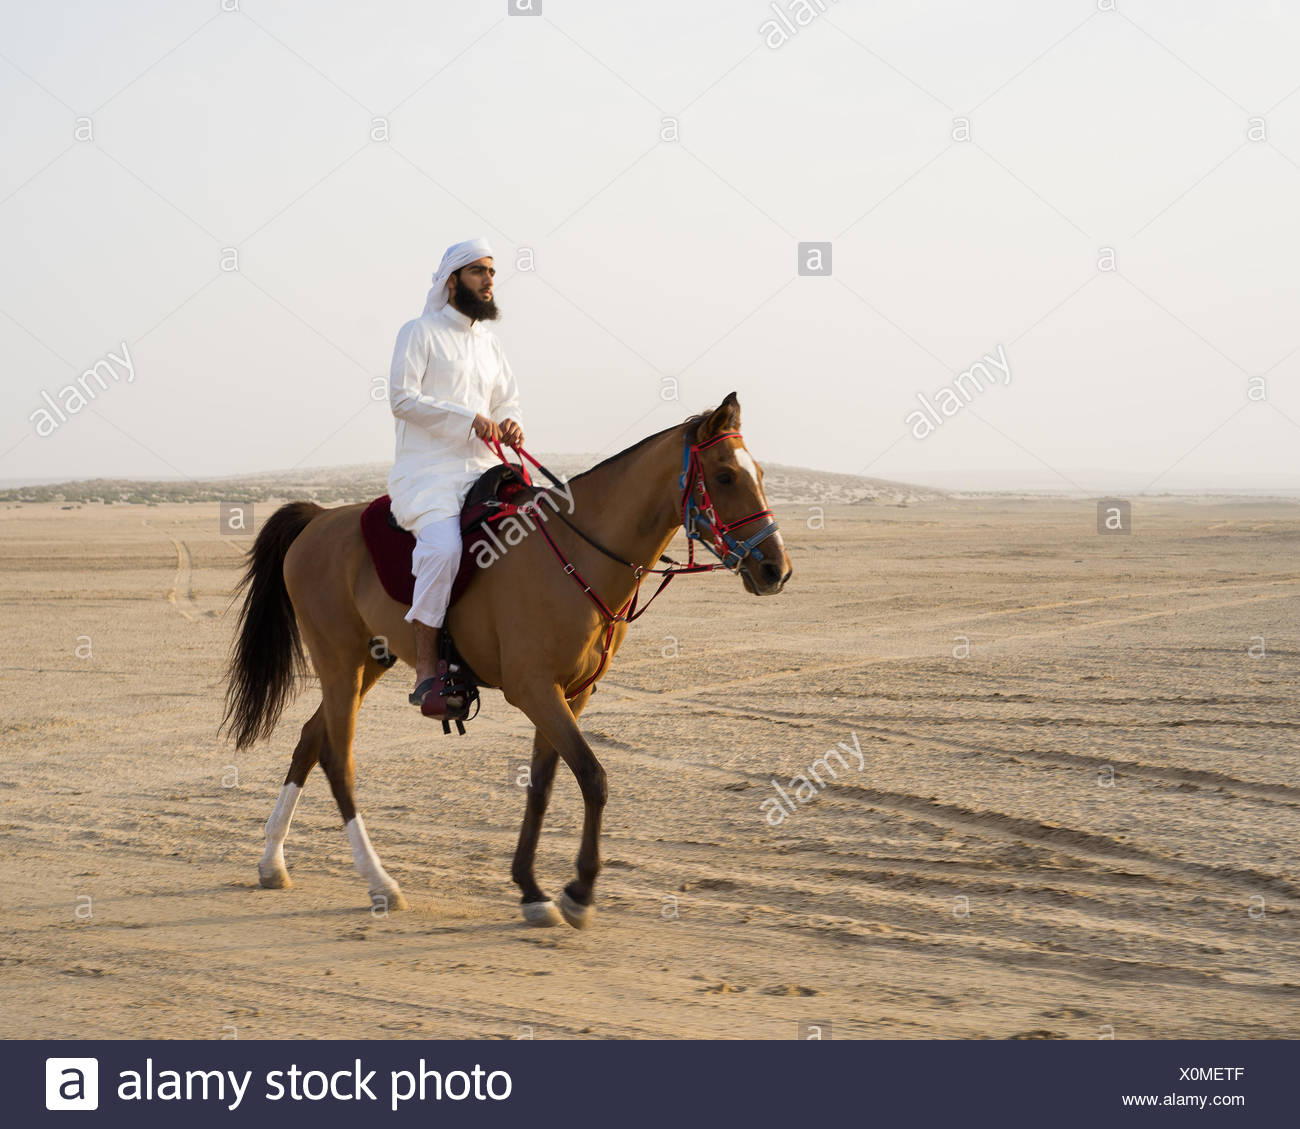 An Arab horseman prepares for the day's hunt during the Al Galayel Hunting Festival in Qatar. The annual event pits teams of hunters against one another using traditional Arab  hunting techniques. - Stock Image